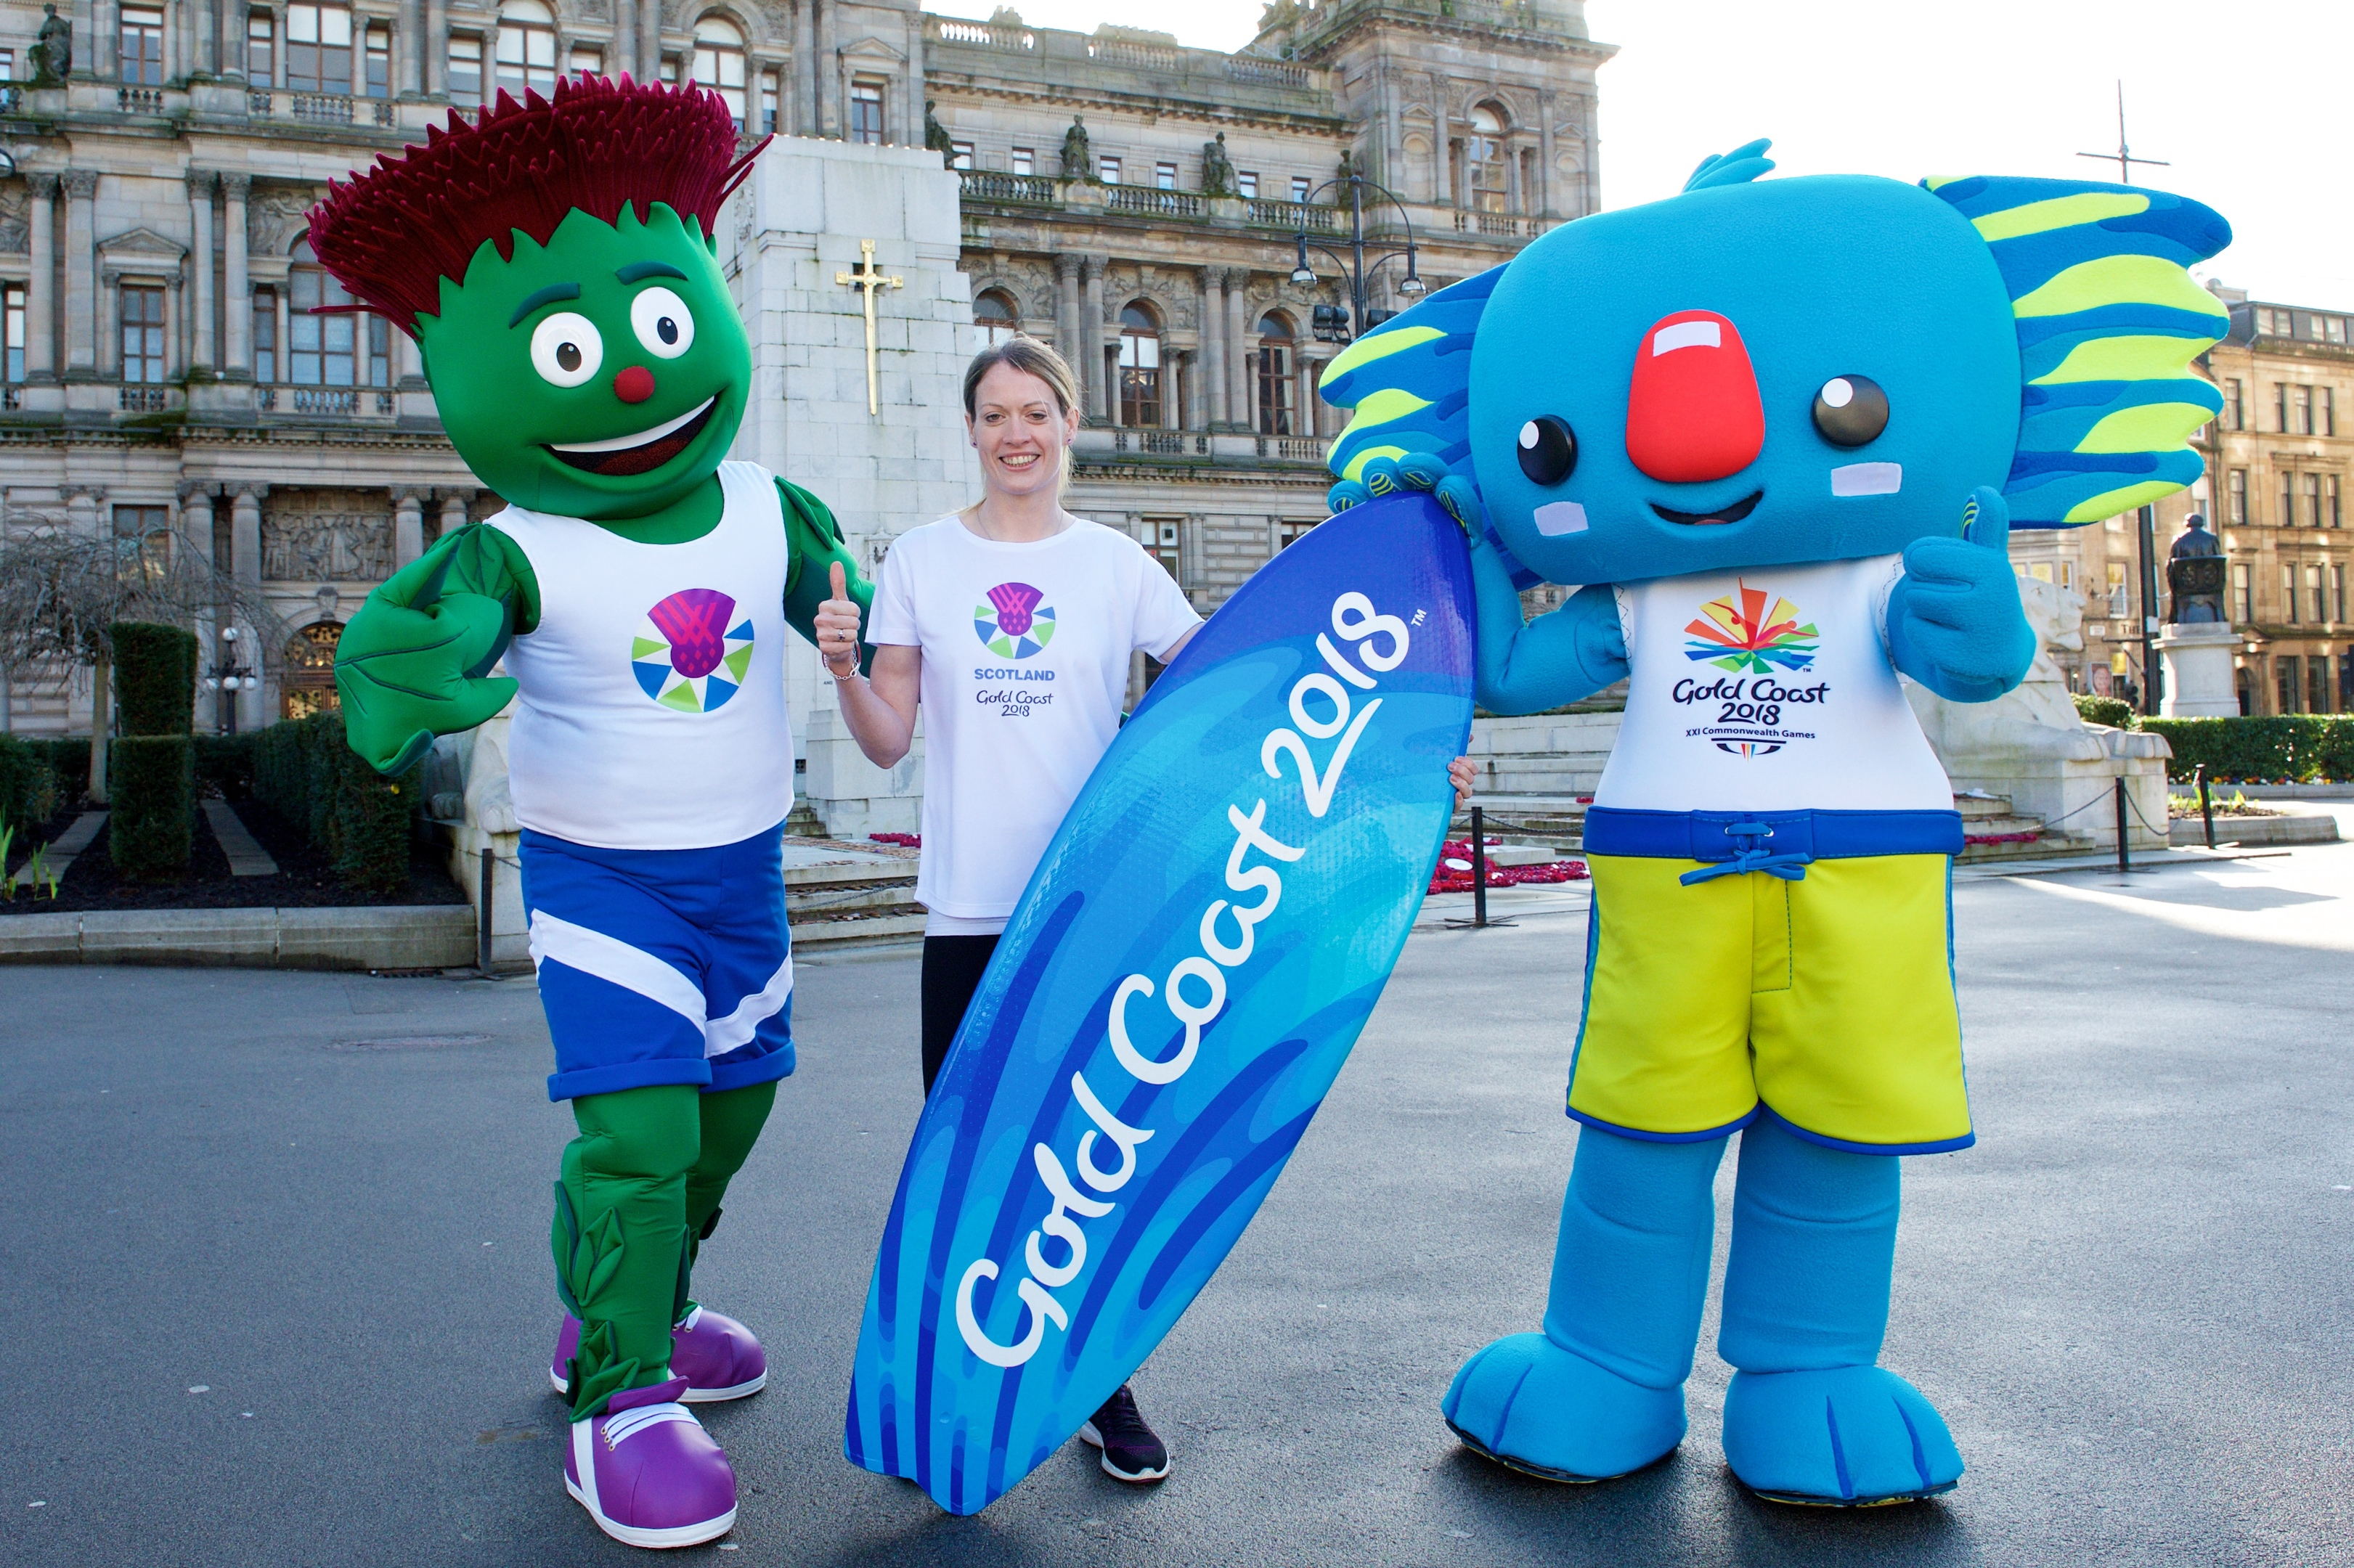 Scottish Olympian Eilidh Doyle with Glasgow 2014 Mascot Clyde and Gold Coast 2018 Mascot Borobi, in Glasgow